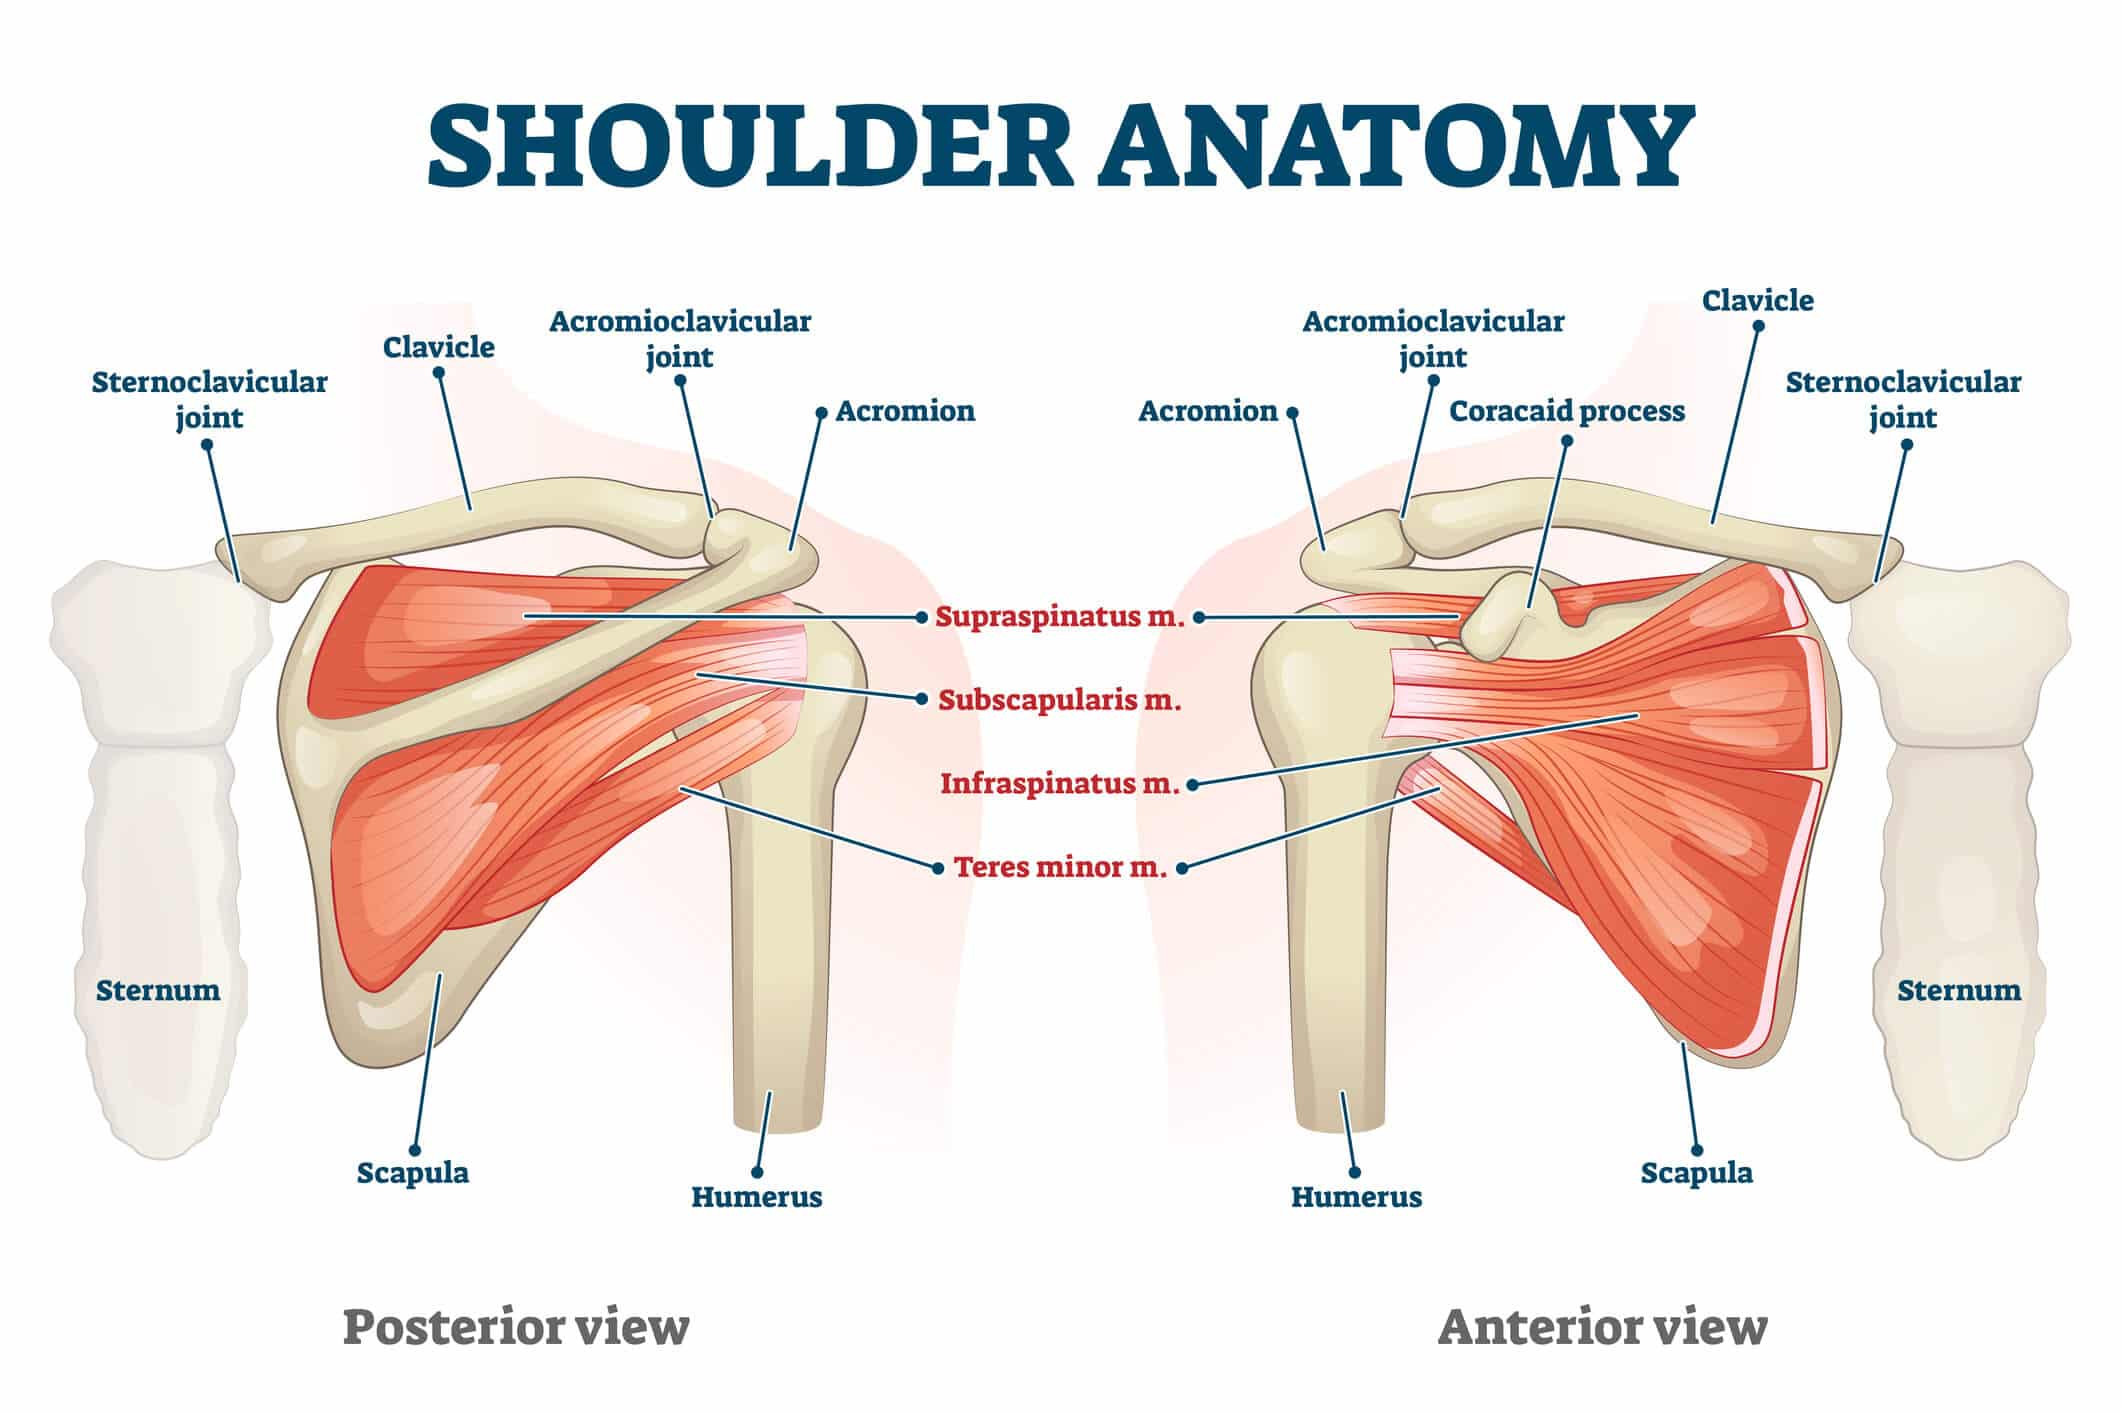 Image of the anatomy of the shoulder, including the clavicle, scapula and humerus that together comprise the shoulder capsule affected by the frozen shoulder condition